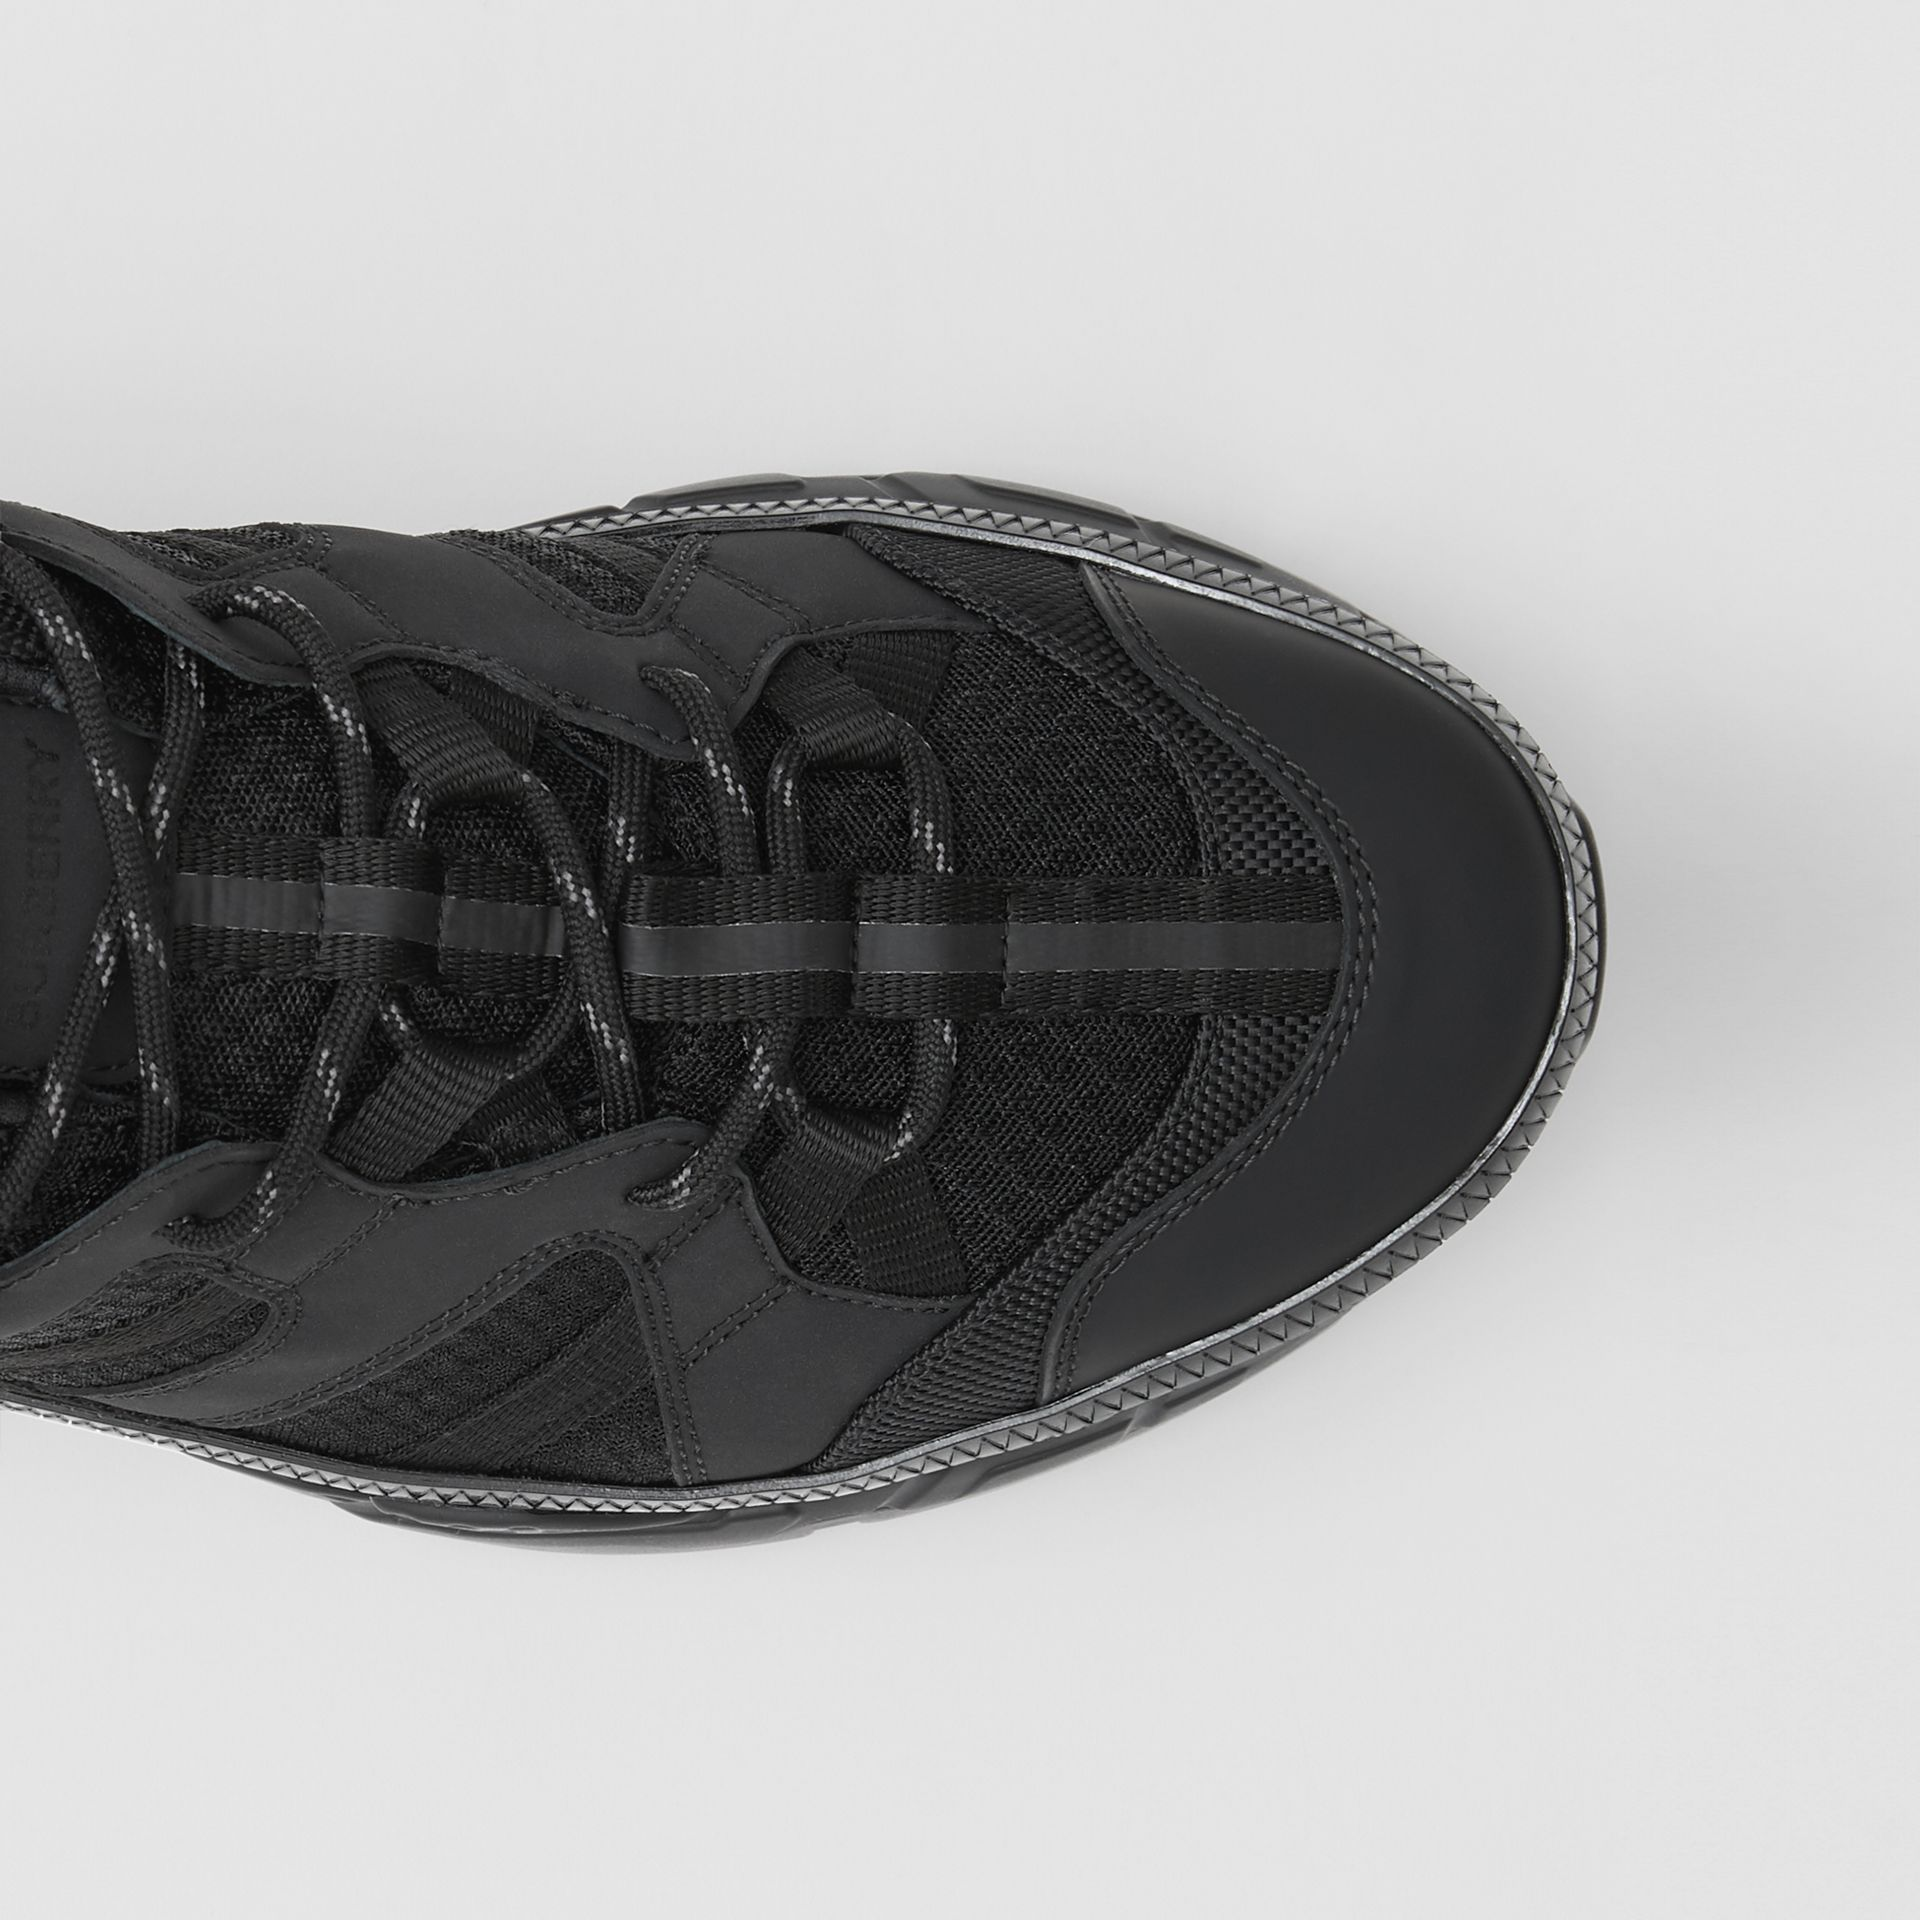 Sneakers en filet et nubuck (Noir) - Homme | Burberry - photo de la galerie 1